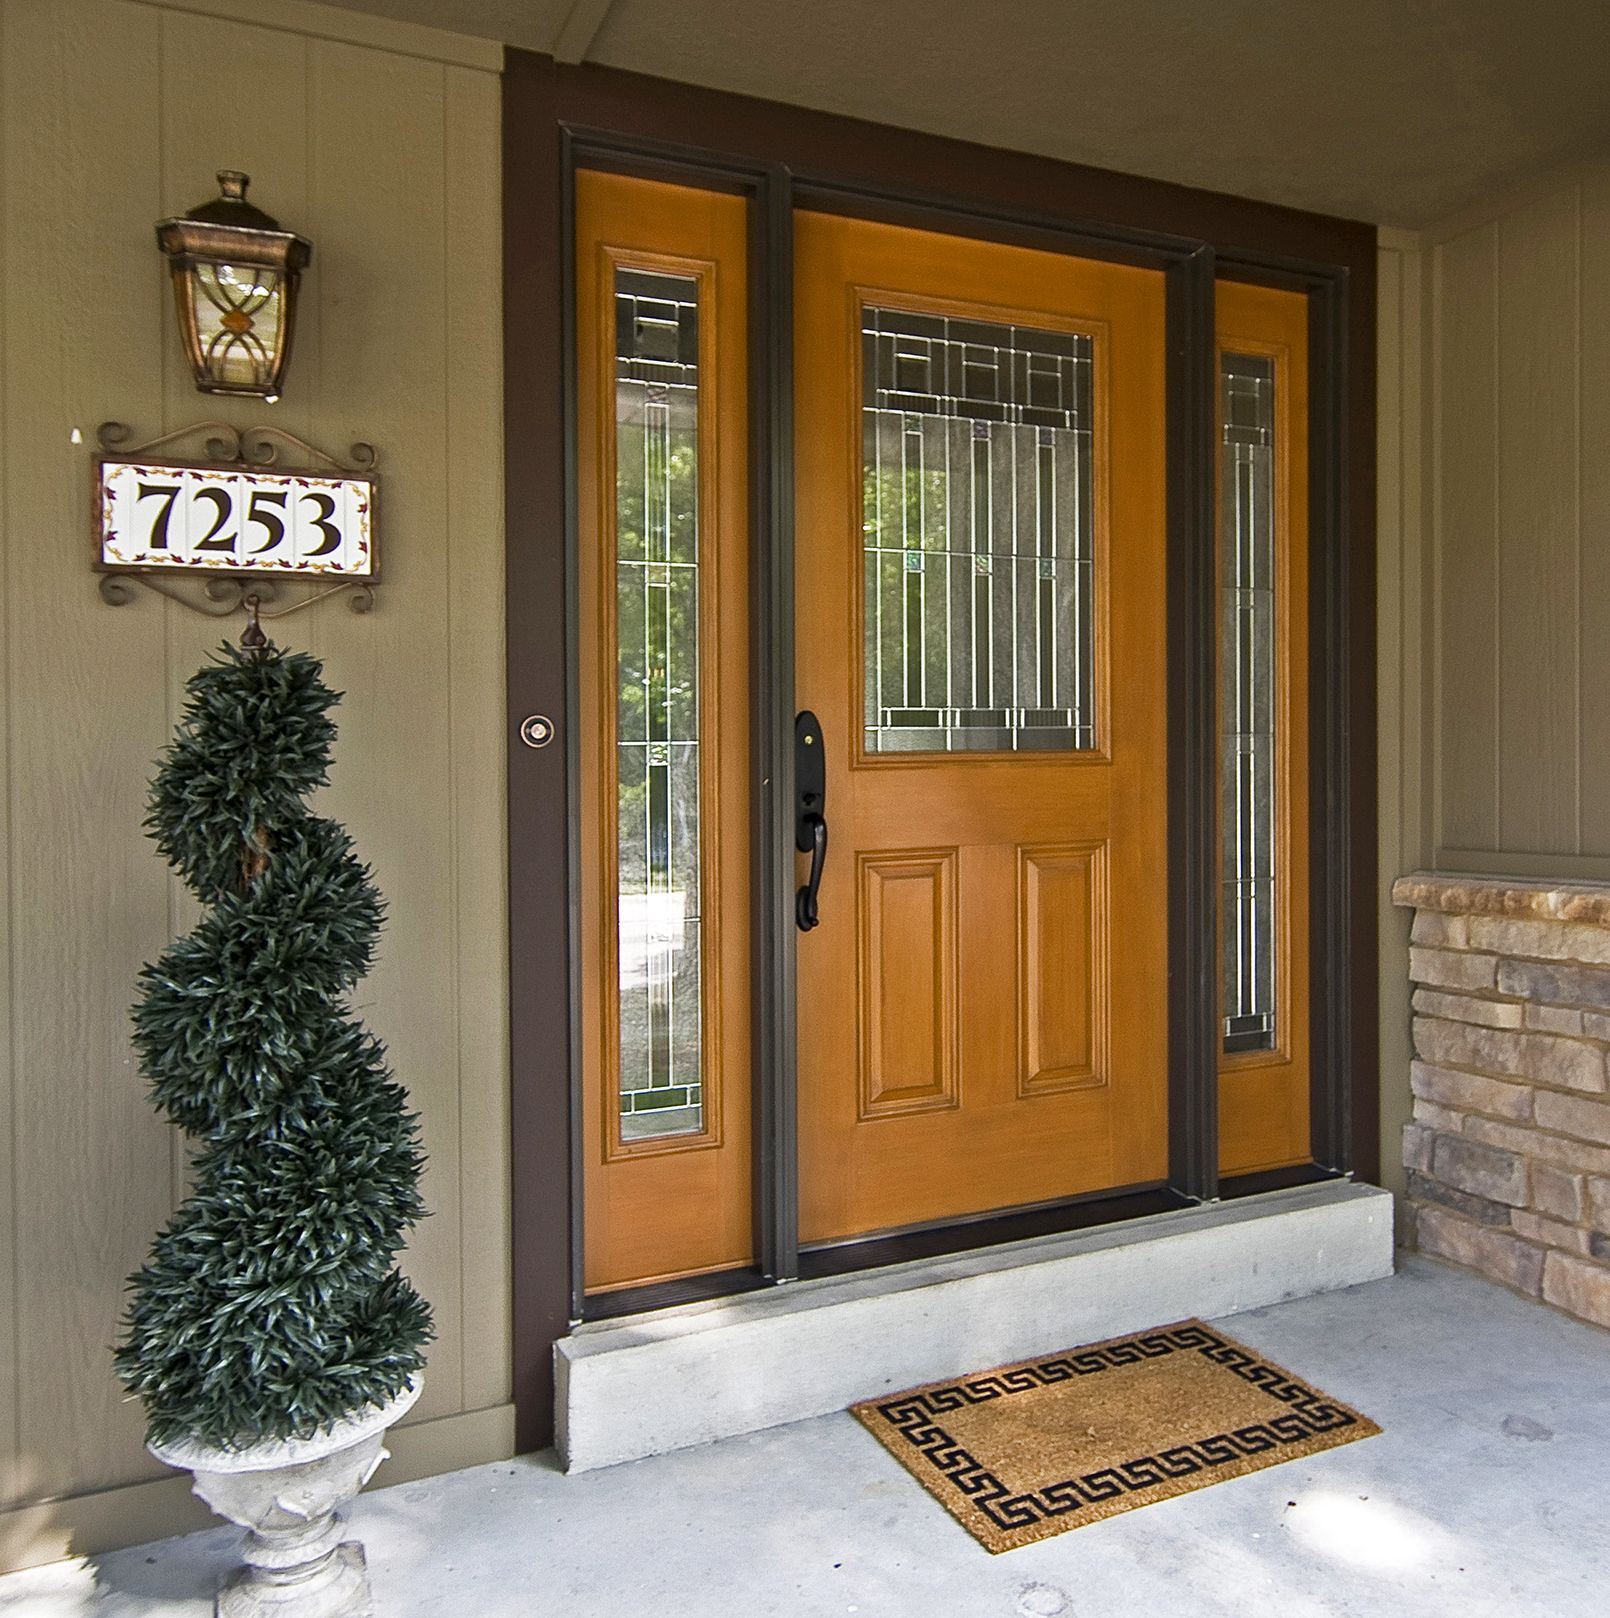 Entry Front Doors: A Fiberglass Entry Door With Sidelights Gets A Subtle